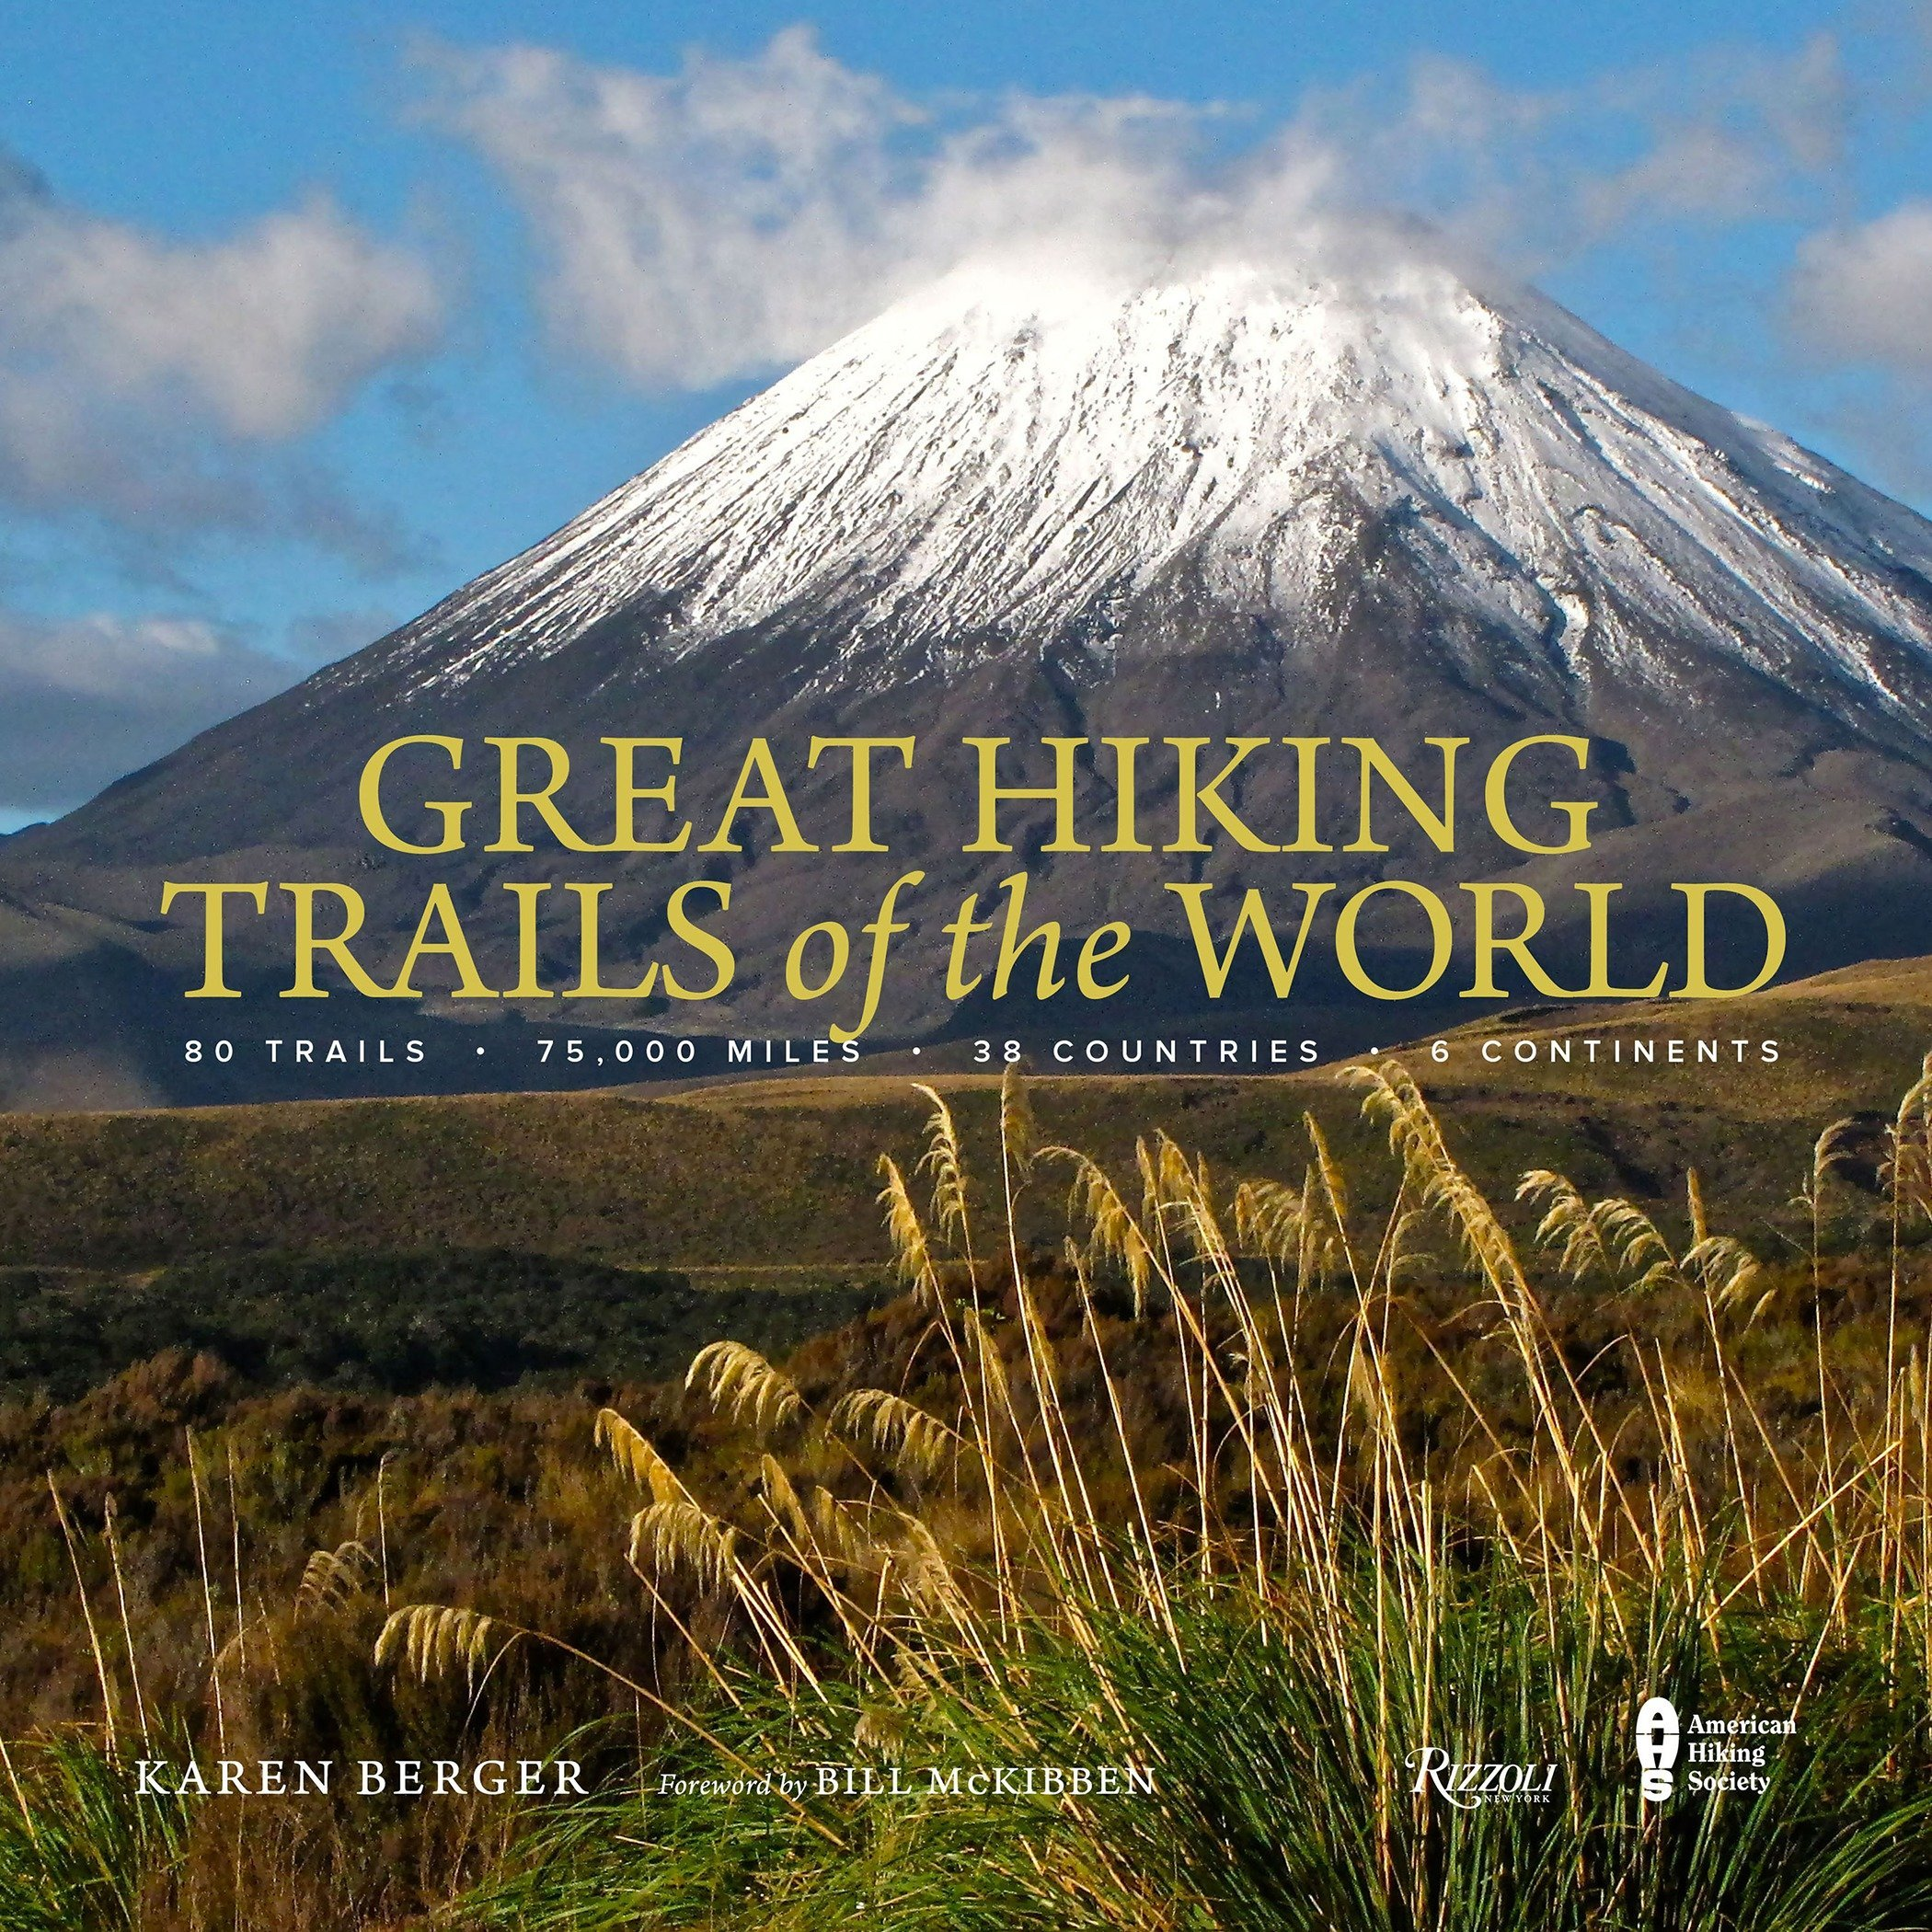 Great Hiking Trails of the World: 80 Trails, 75,000 Miles, 38 Countries, 6 Continents by Rizzoli